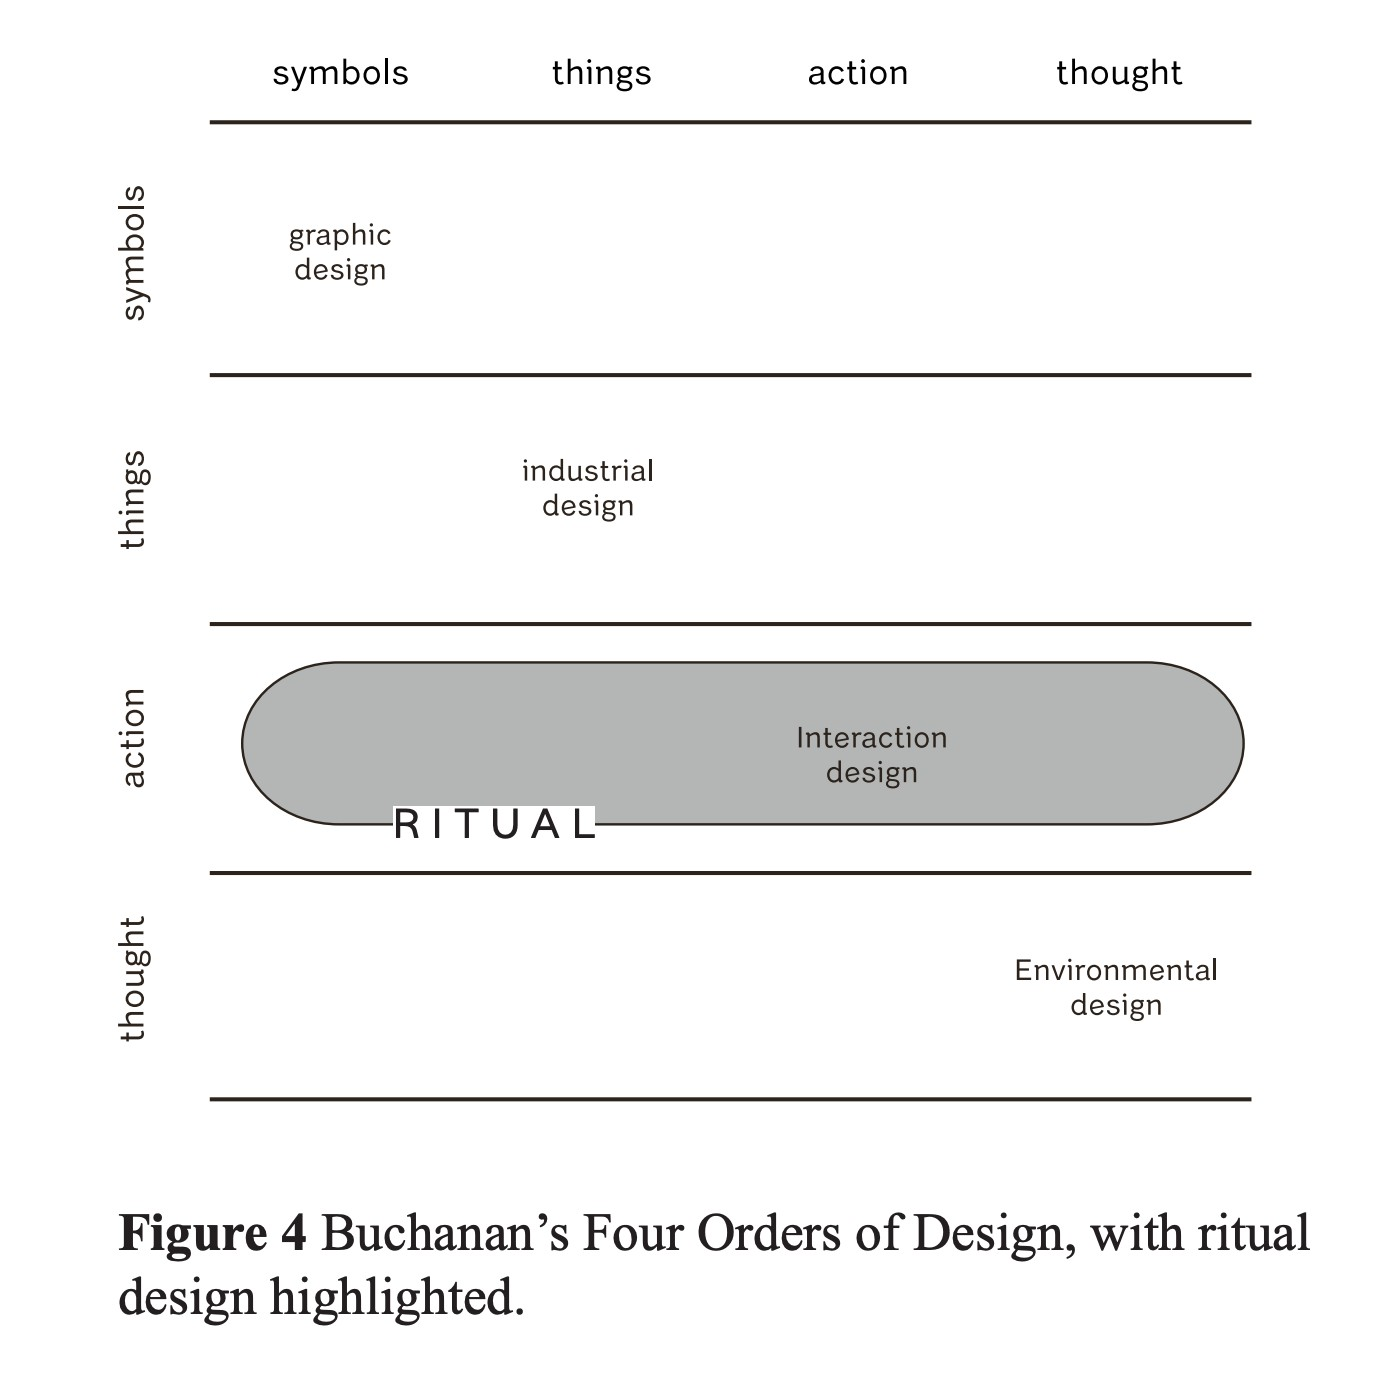 Co-designing rituals for transitional times